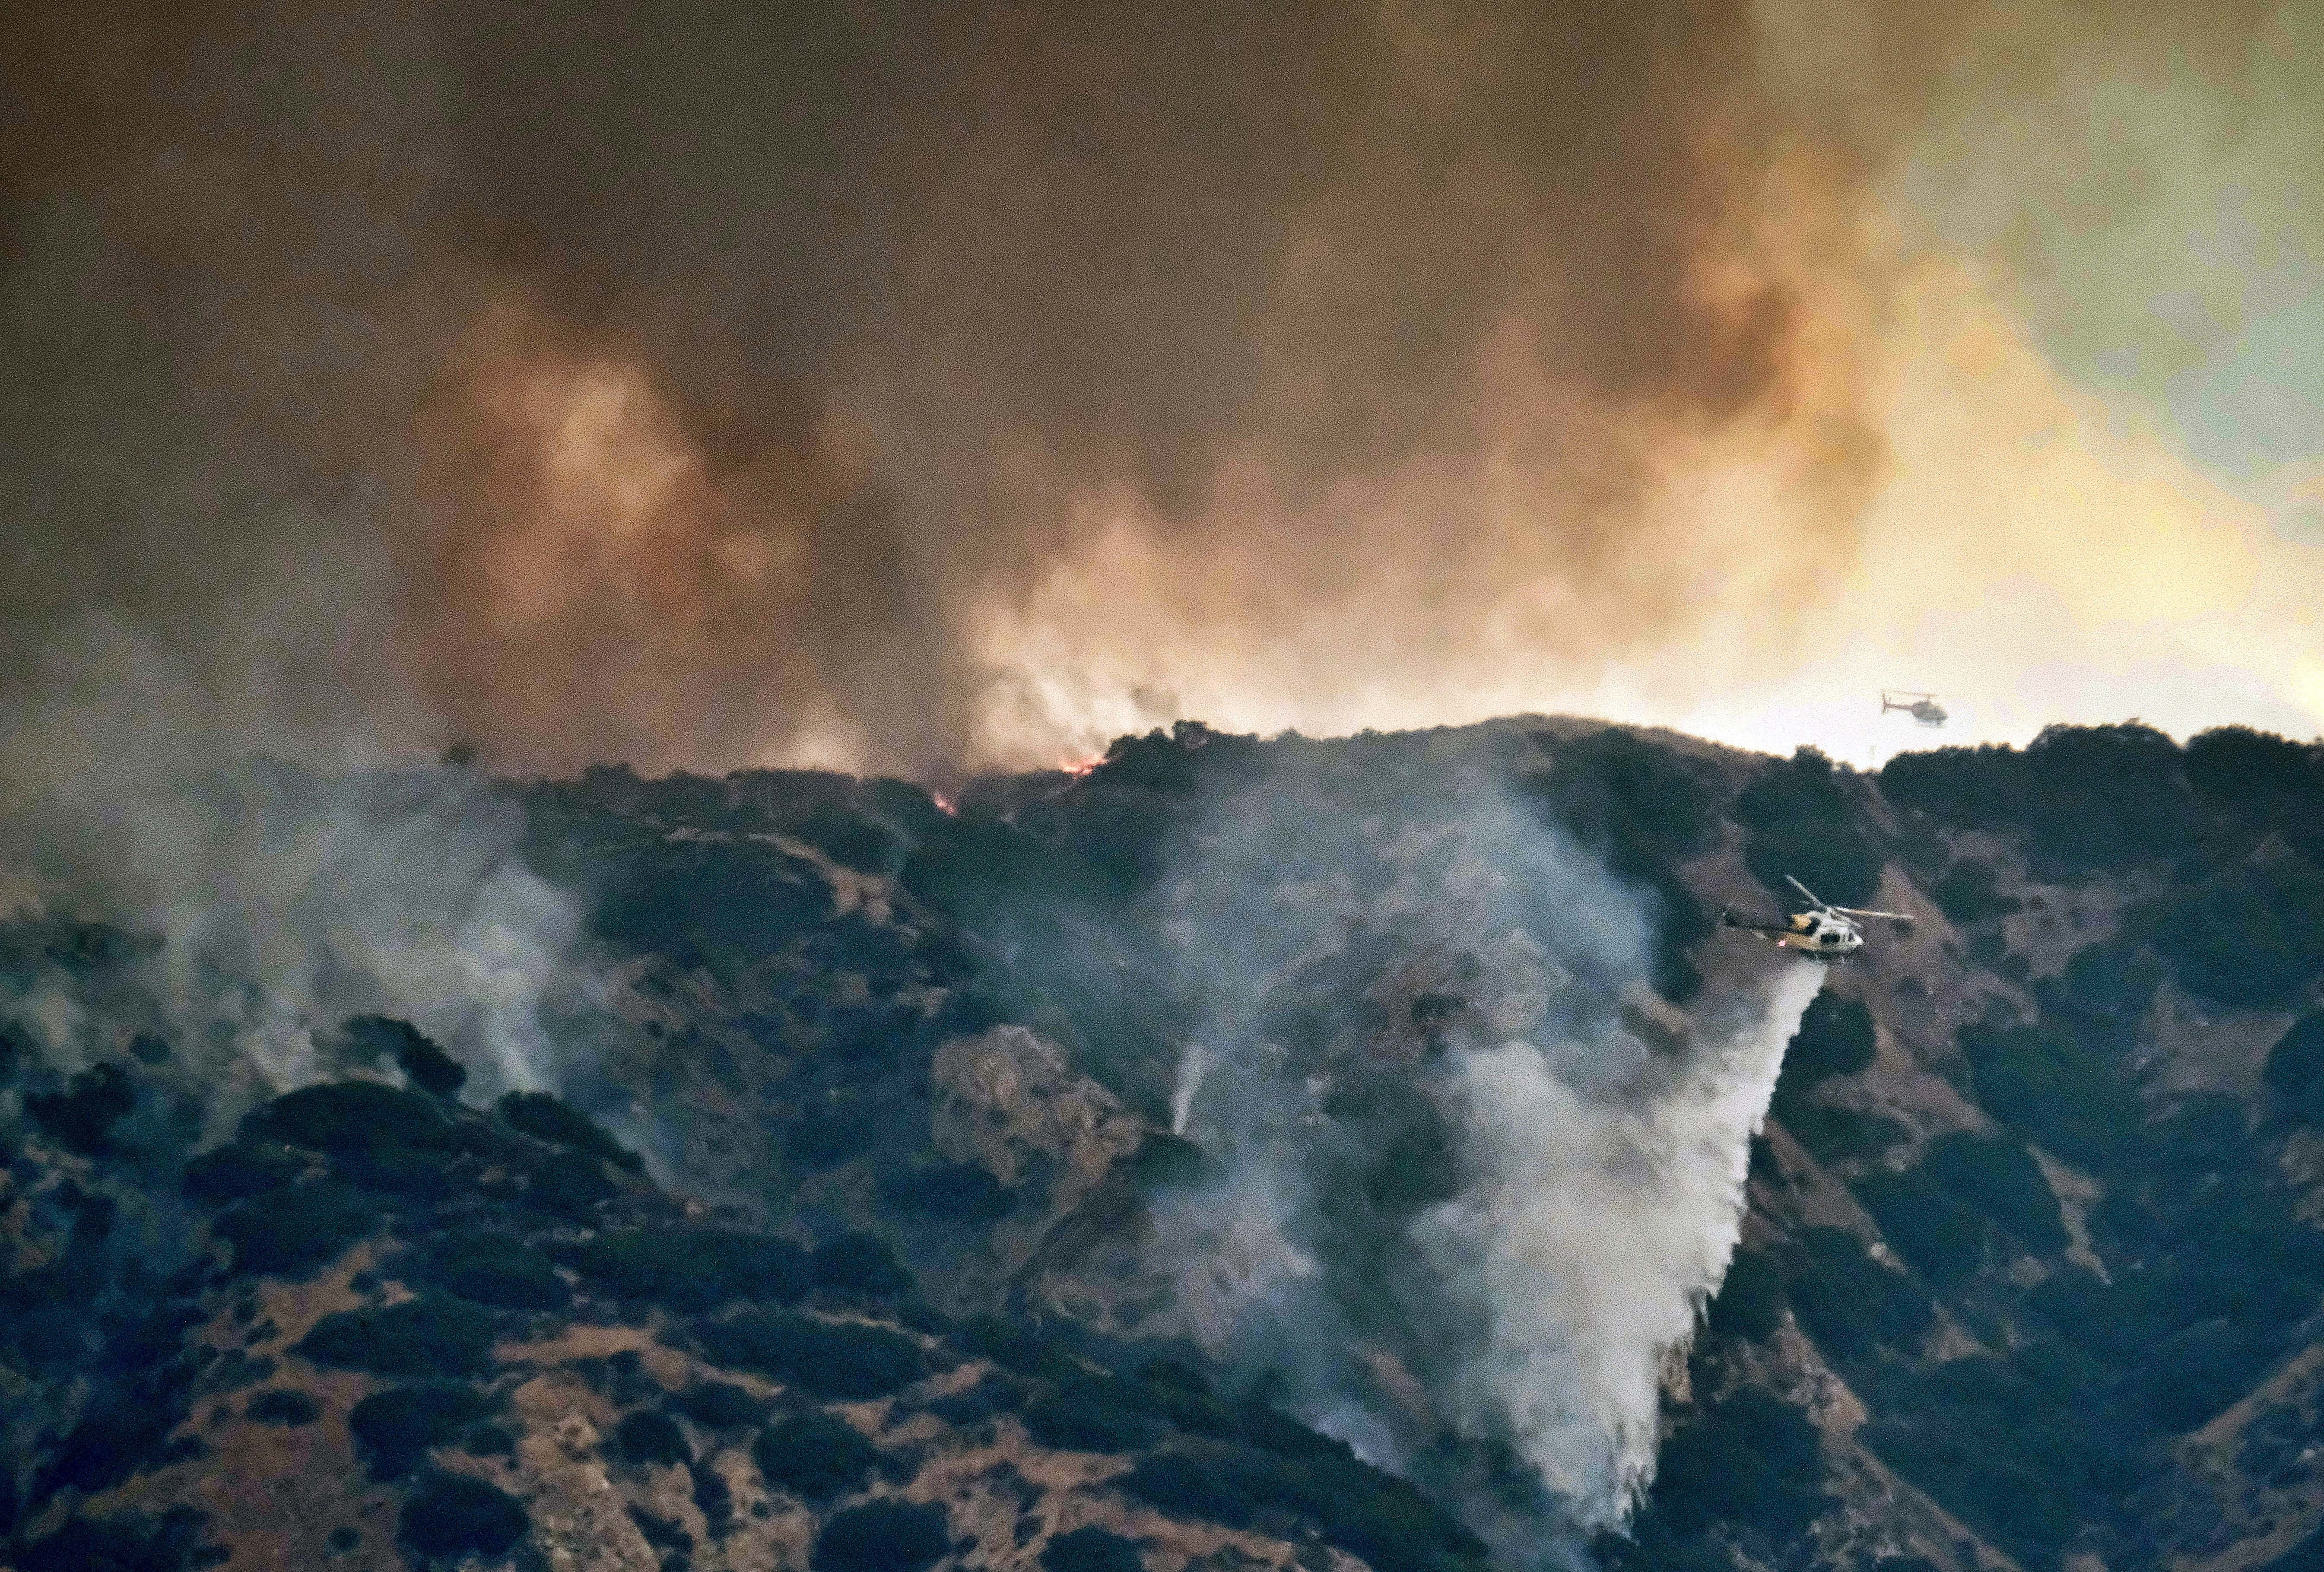 A helicopter makes a water drop amid black smoke rising from a wildfire burning in the Tujunga area of Los Angeles, seen from nearby Burbank, Calif., Sept. 1, 2017. Subdivisions full of houses are within a mile of the flames, and residents of three s...